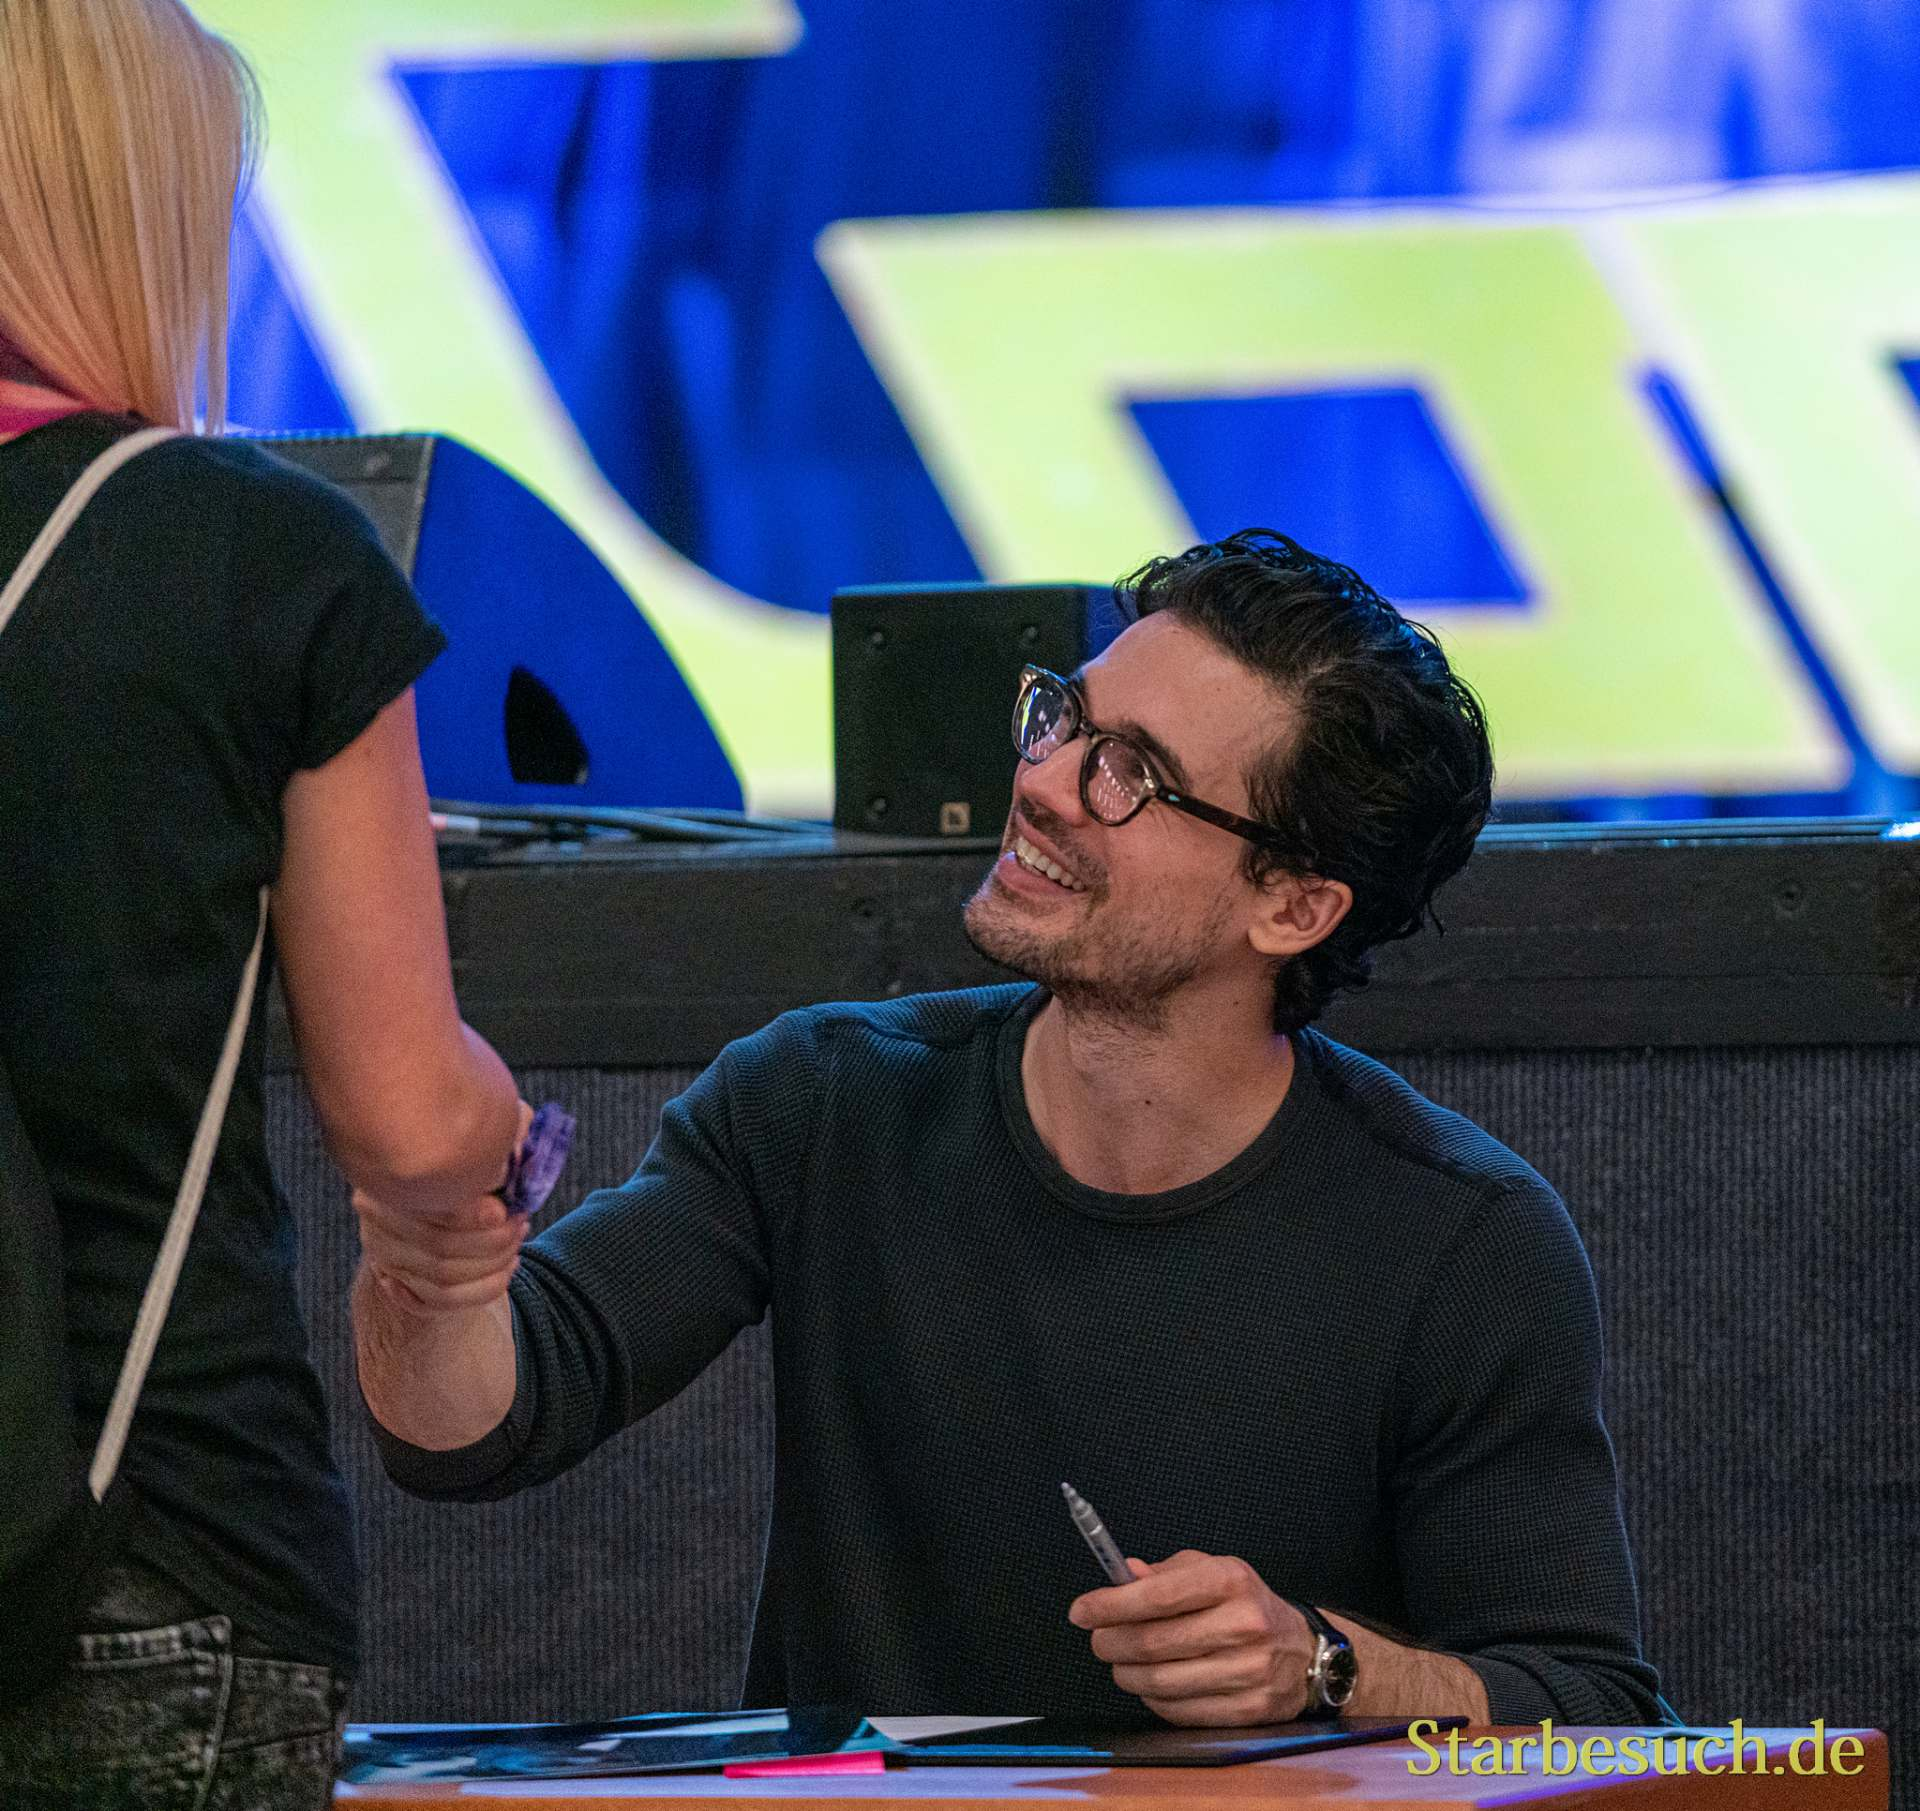 Bonn, Germany - June 8 2019: Steven Strait (*1986, American actor and model - The Expanse) is happy to meet fans at FedCon 28, a four day sci-fi convention. FedCon 28 took place Jun 7-10 2019.